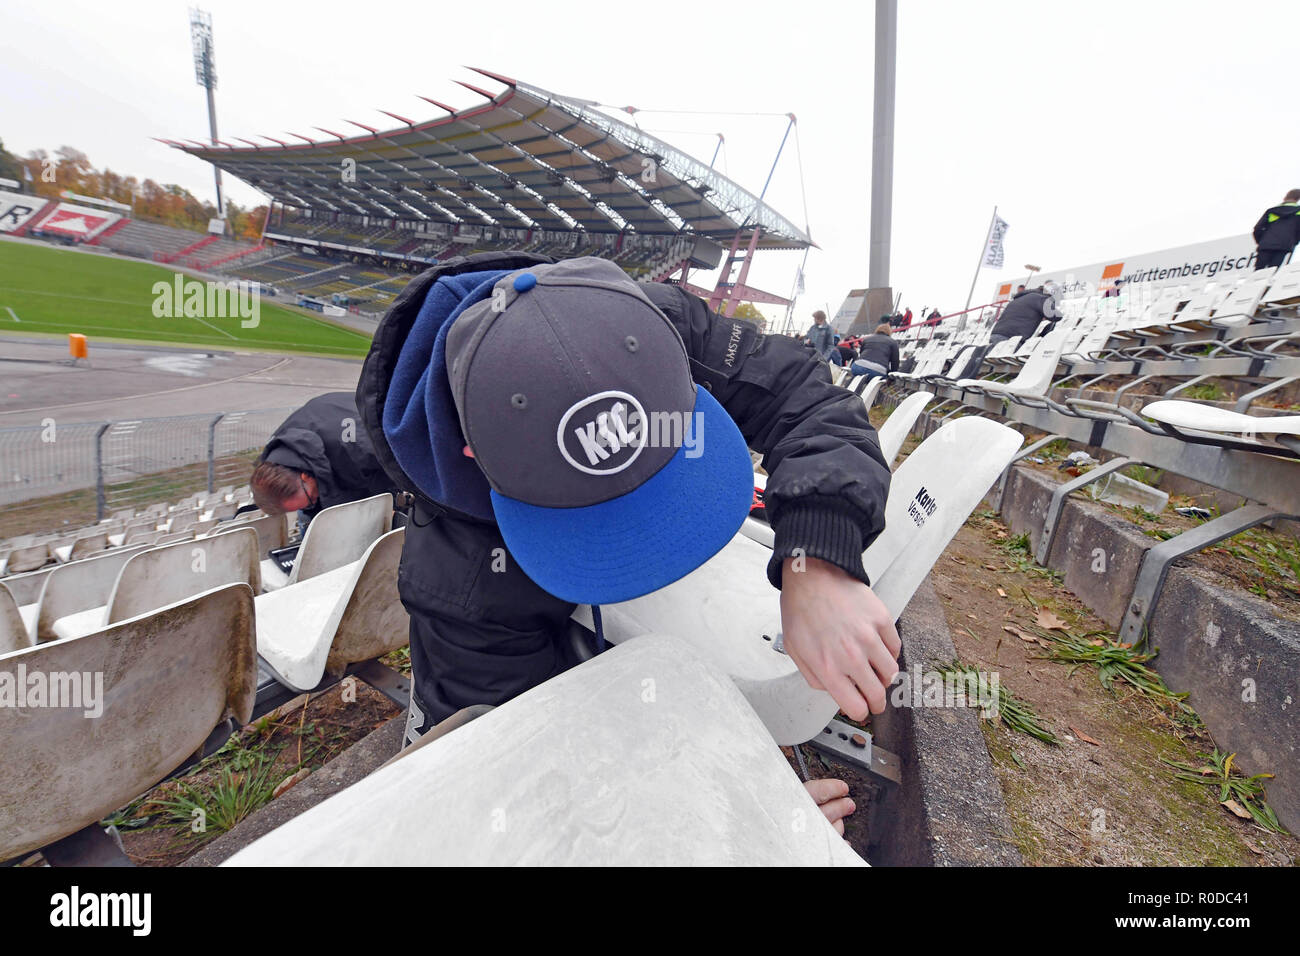 04 November 2018, Baden-Wuerttemberg, Karlsruhe: Fans of the third-league soccer team Karlsruher SC dismantle seat shells in the Wildparkstadion Karlsruhe. Before the demolition work on blocks A1 to A4 begins in the stadium on 05.11.2018, KSC fans can secure up to ten seat shells for five euros each. According to the association, the proceeds from the fan campaign will be donated to the youngsters of Karlsruher SC. Photo: Uli Deck/dpa - Stock Image